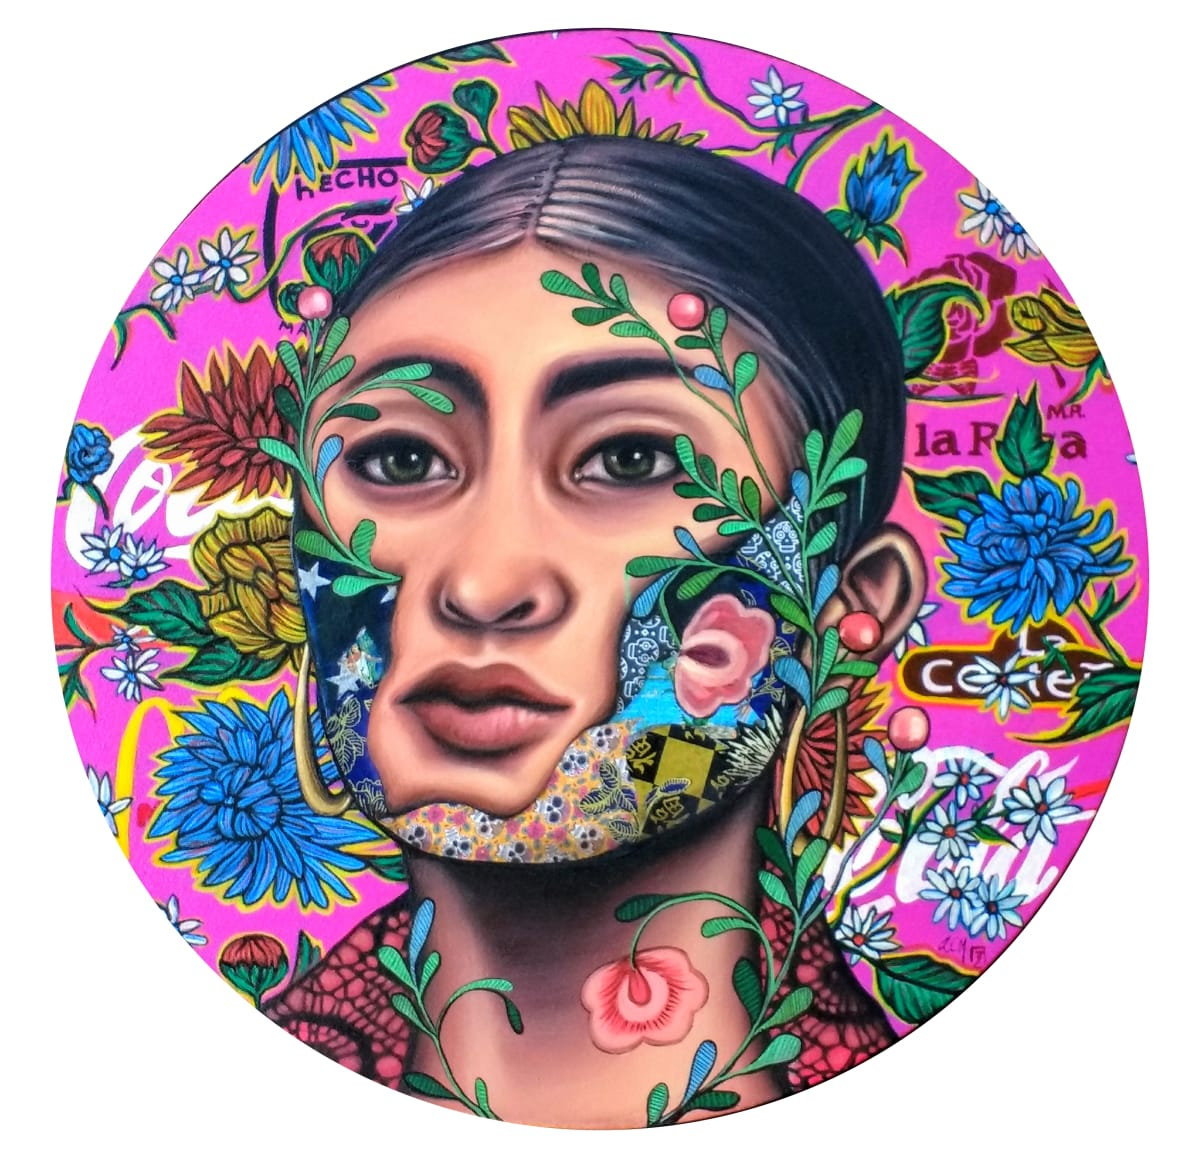 Chicana by Angelica Contreras